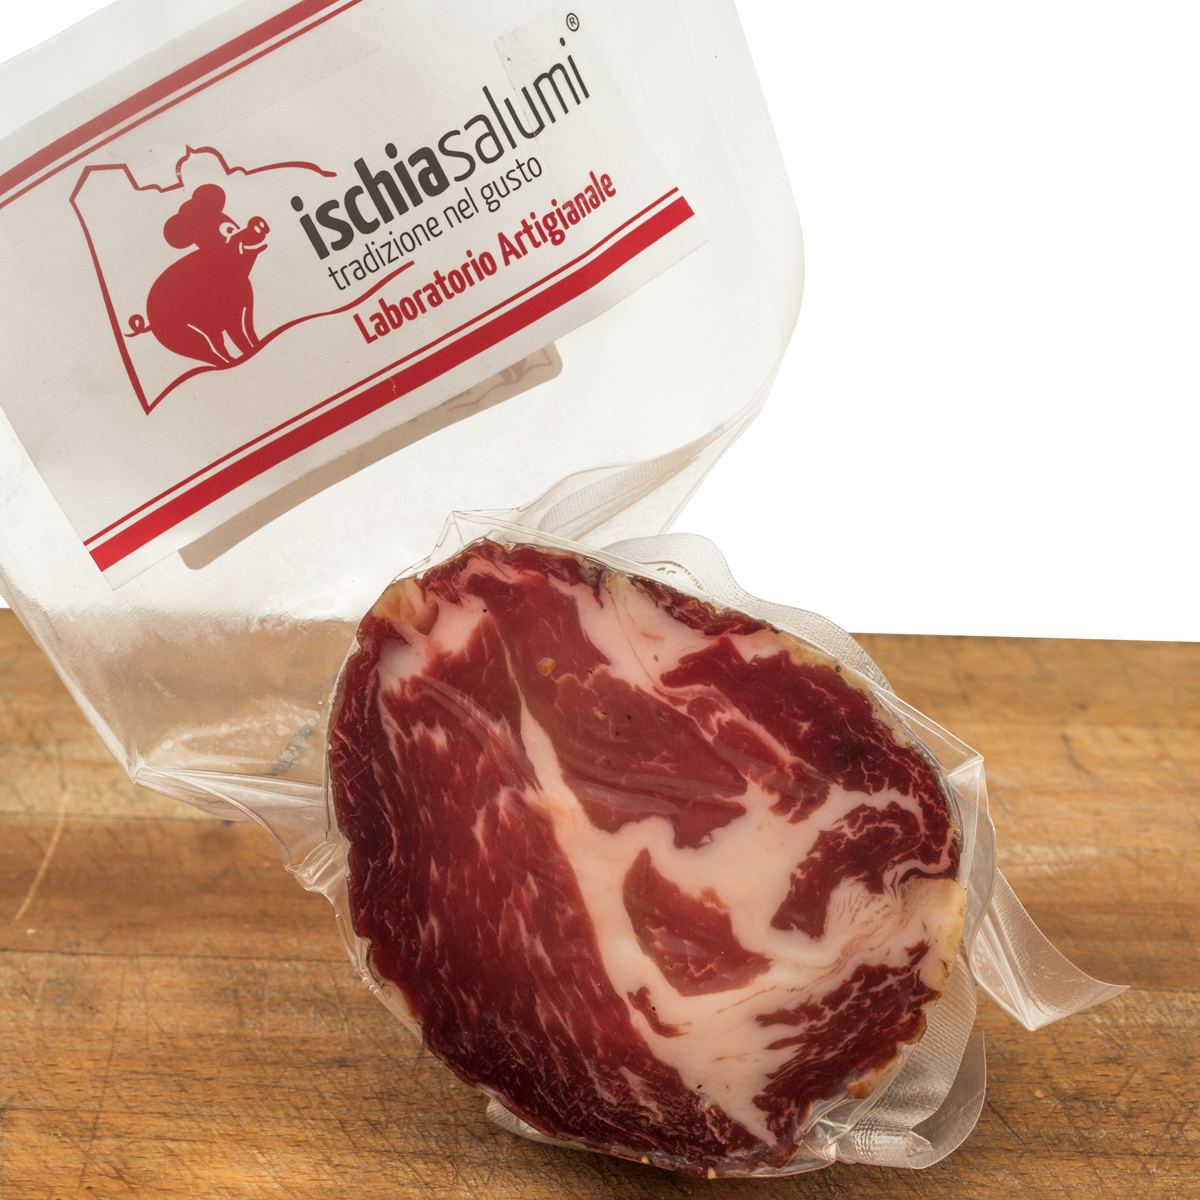 Capocollo(Coppa) Ischitano